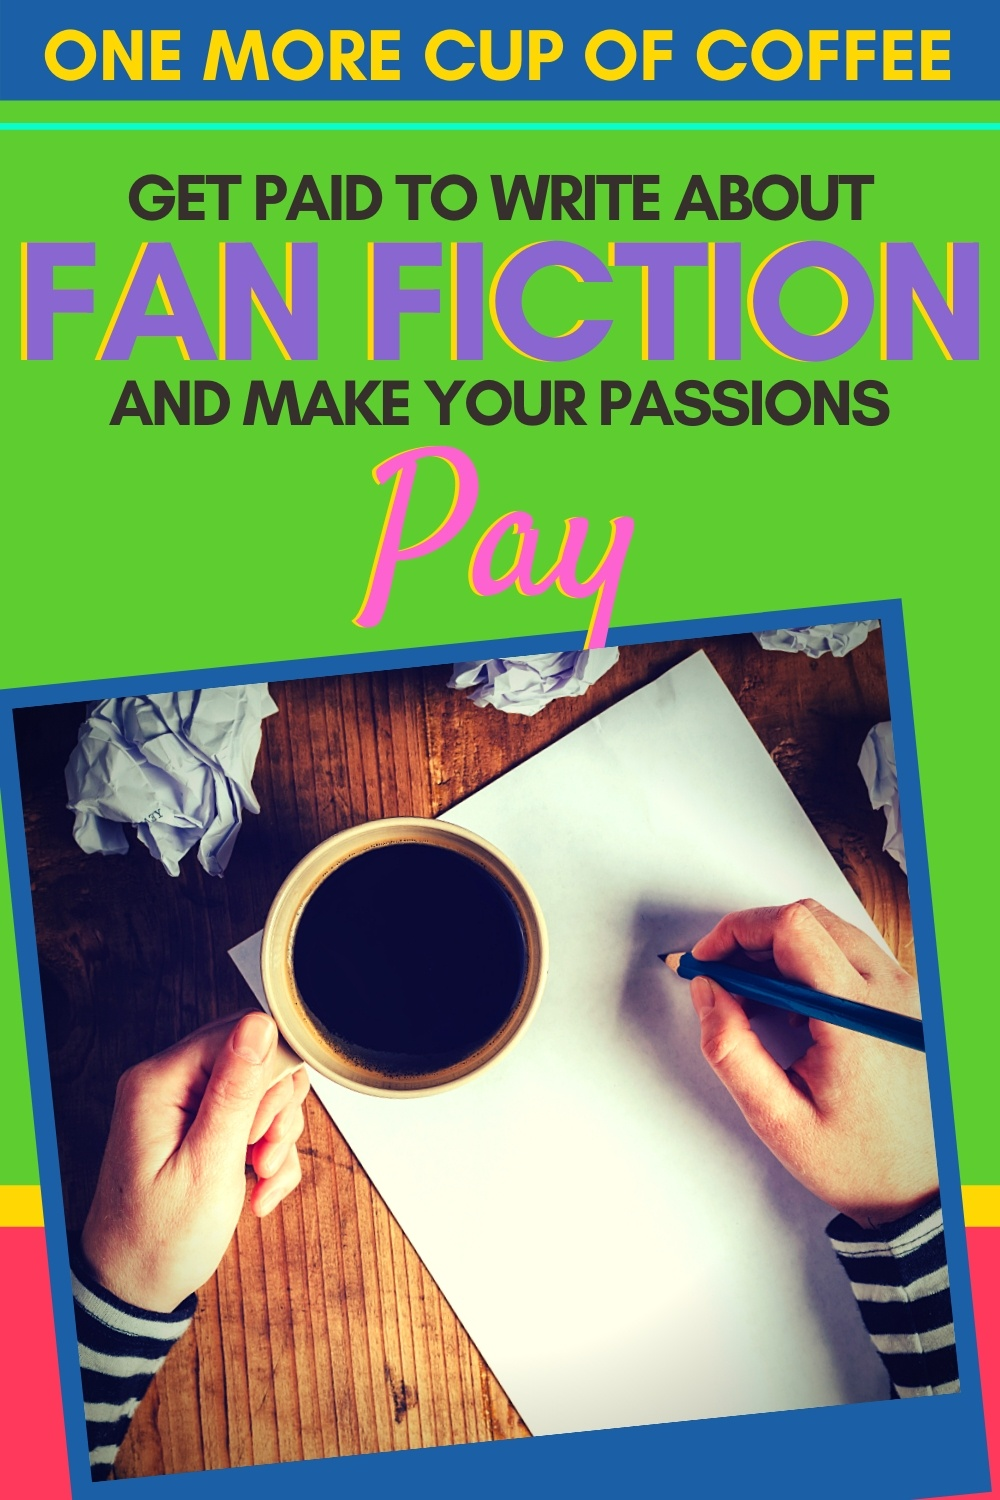 pen, paper, cup of coffee to illustrating writing about fan fiction as a job.